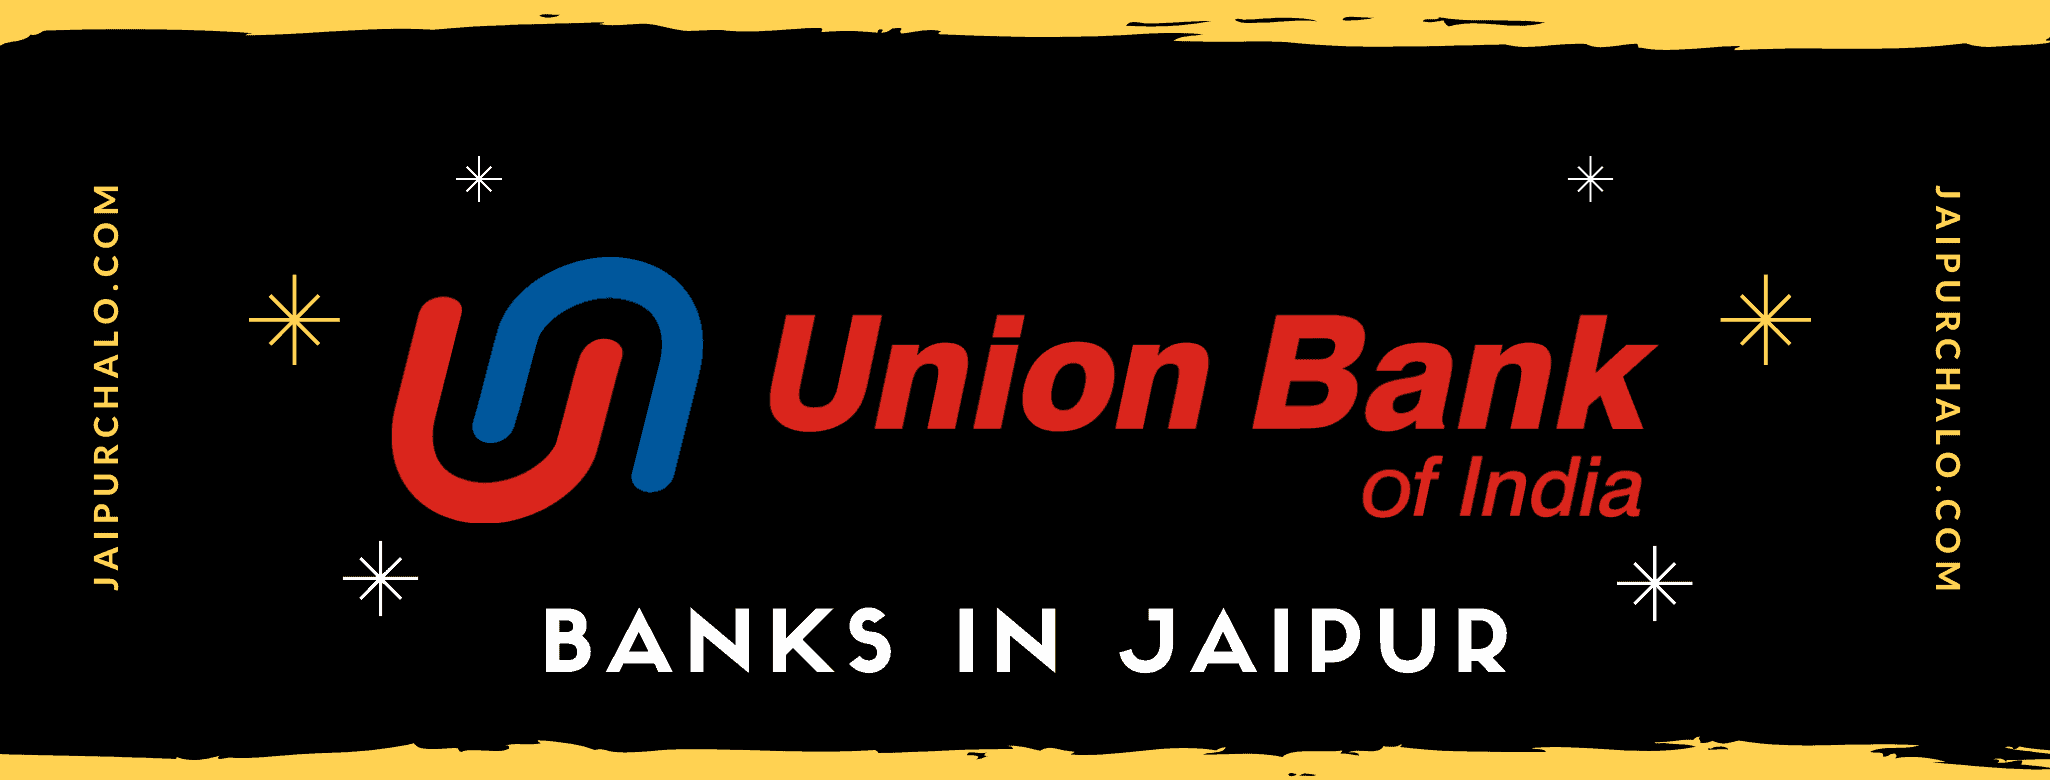 Union bank of india jaipur